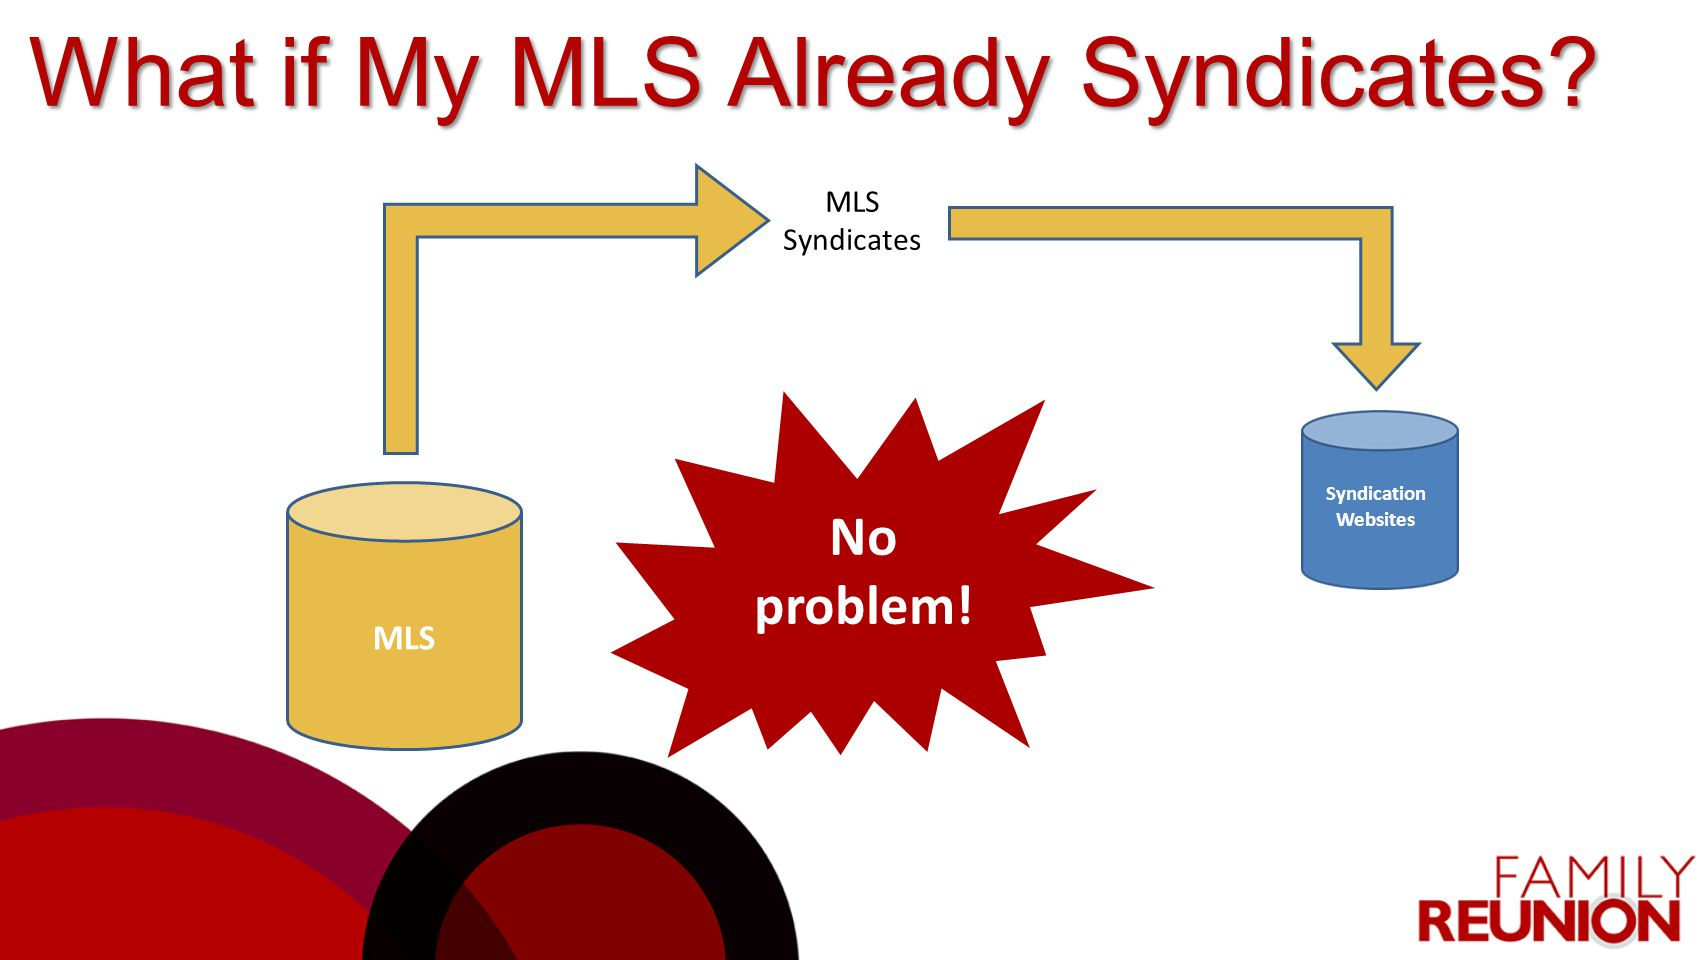 What if My MLS Already Syndicates